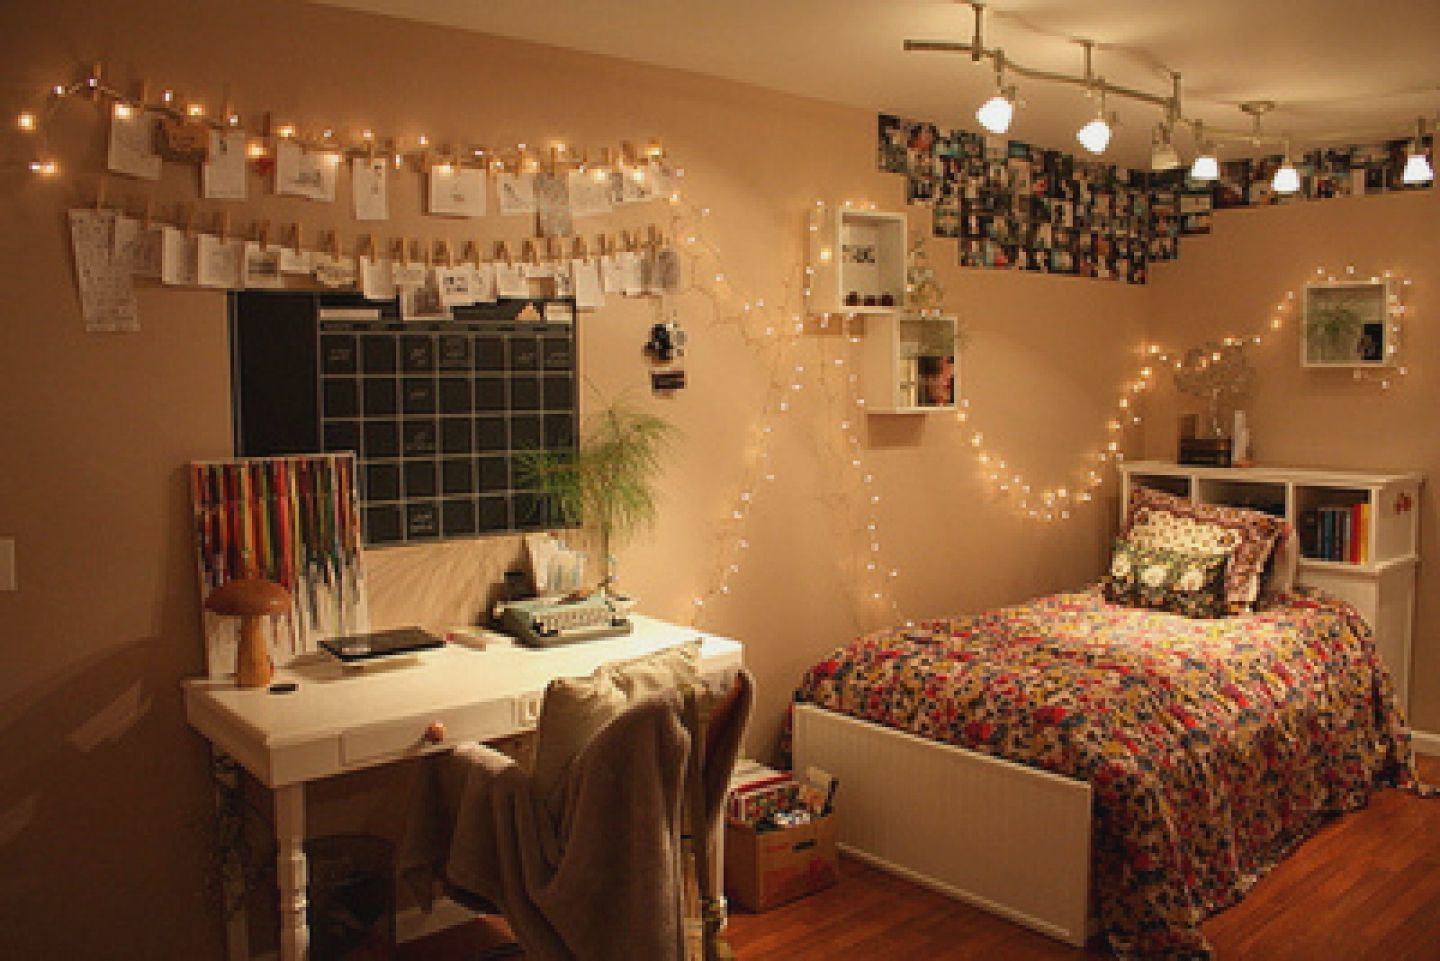 Bedrooms Tumblr Vintage Bedroom Ideas Tumblr M Vintage Bedroom Ideas Tumblr